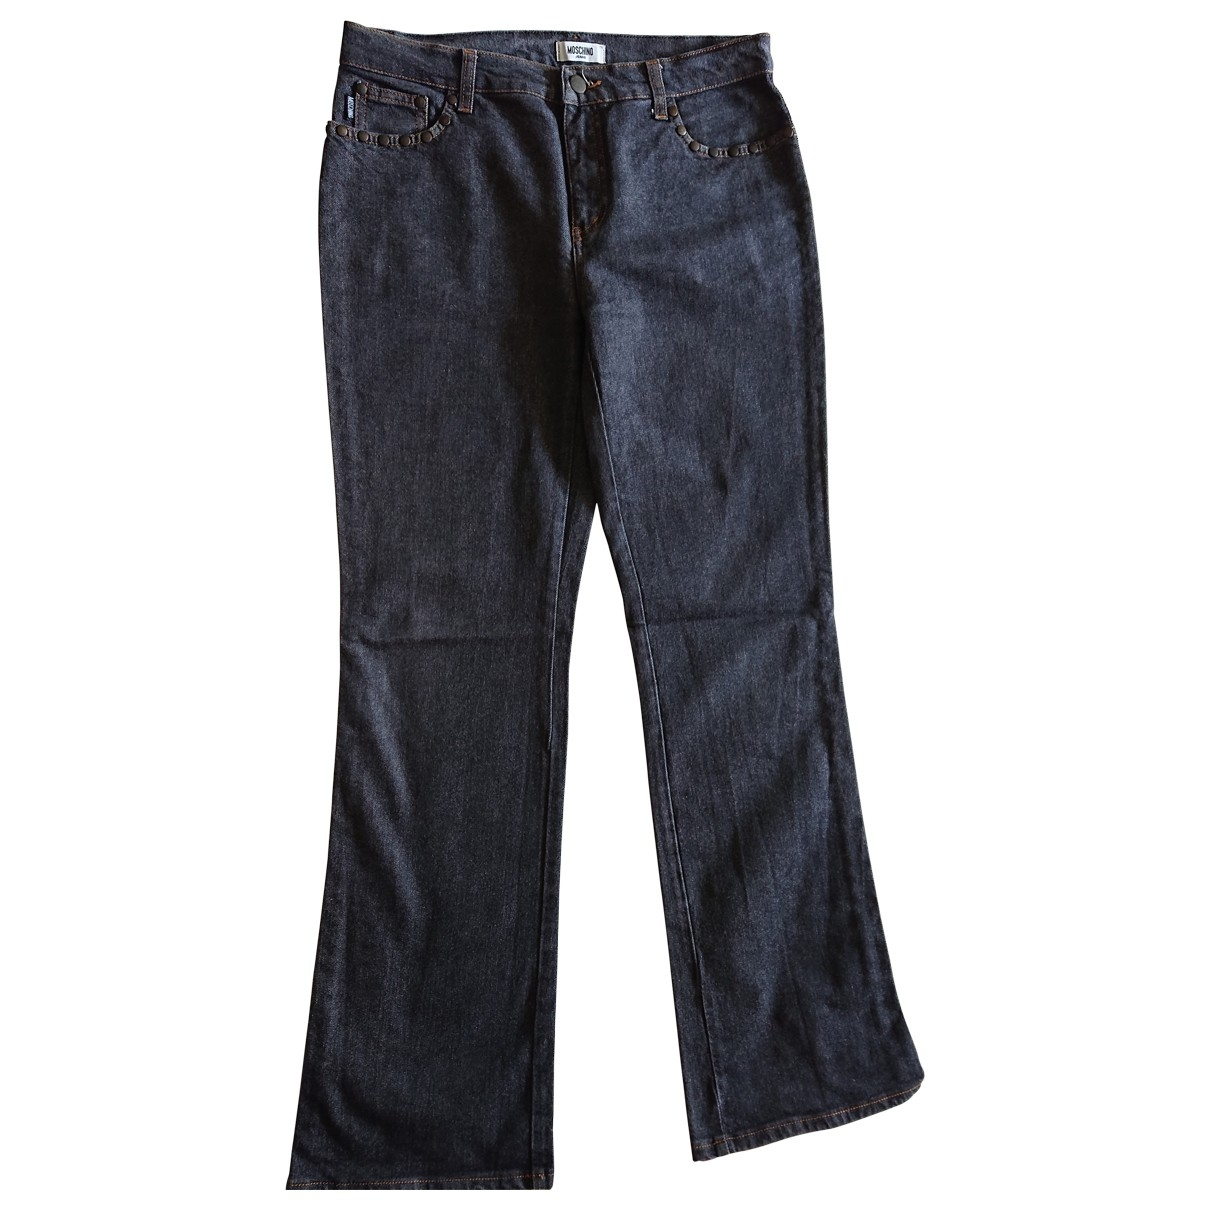 Moschino Cheap And Chic \N Blue Denim - Jeans Jeans for Women 33 US